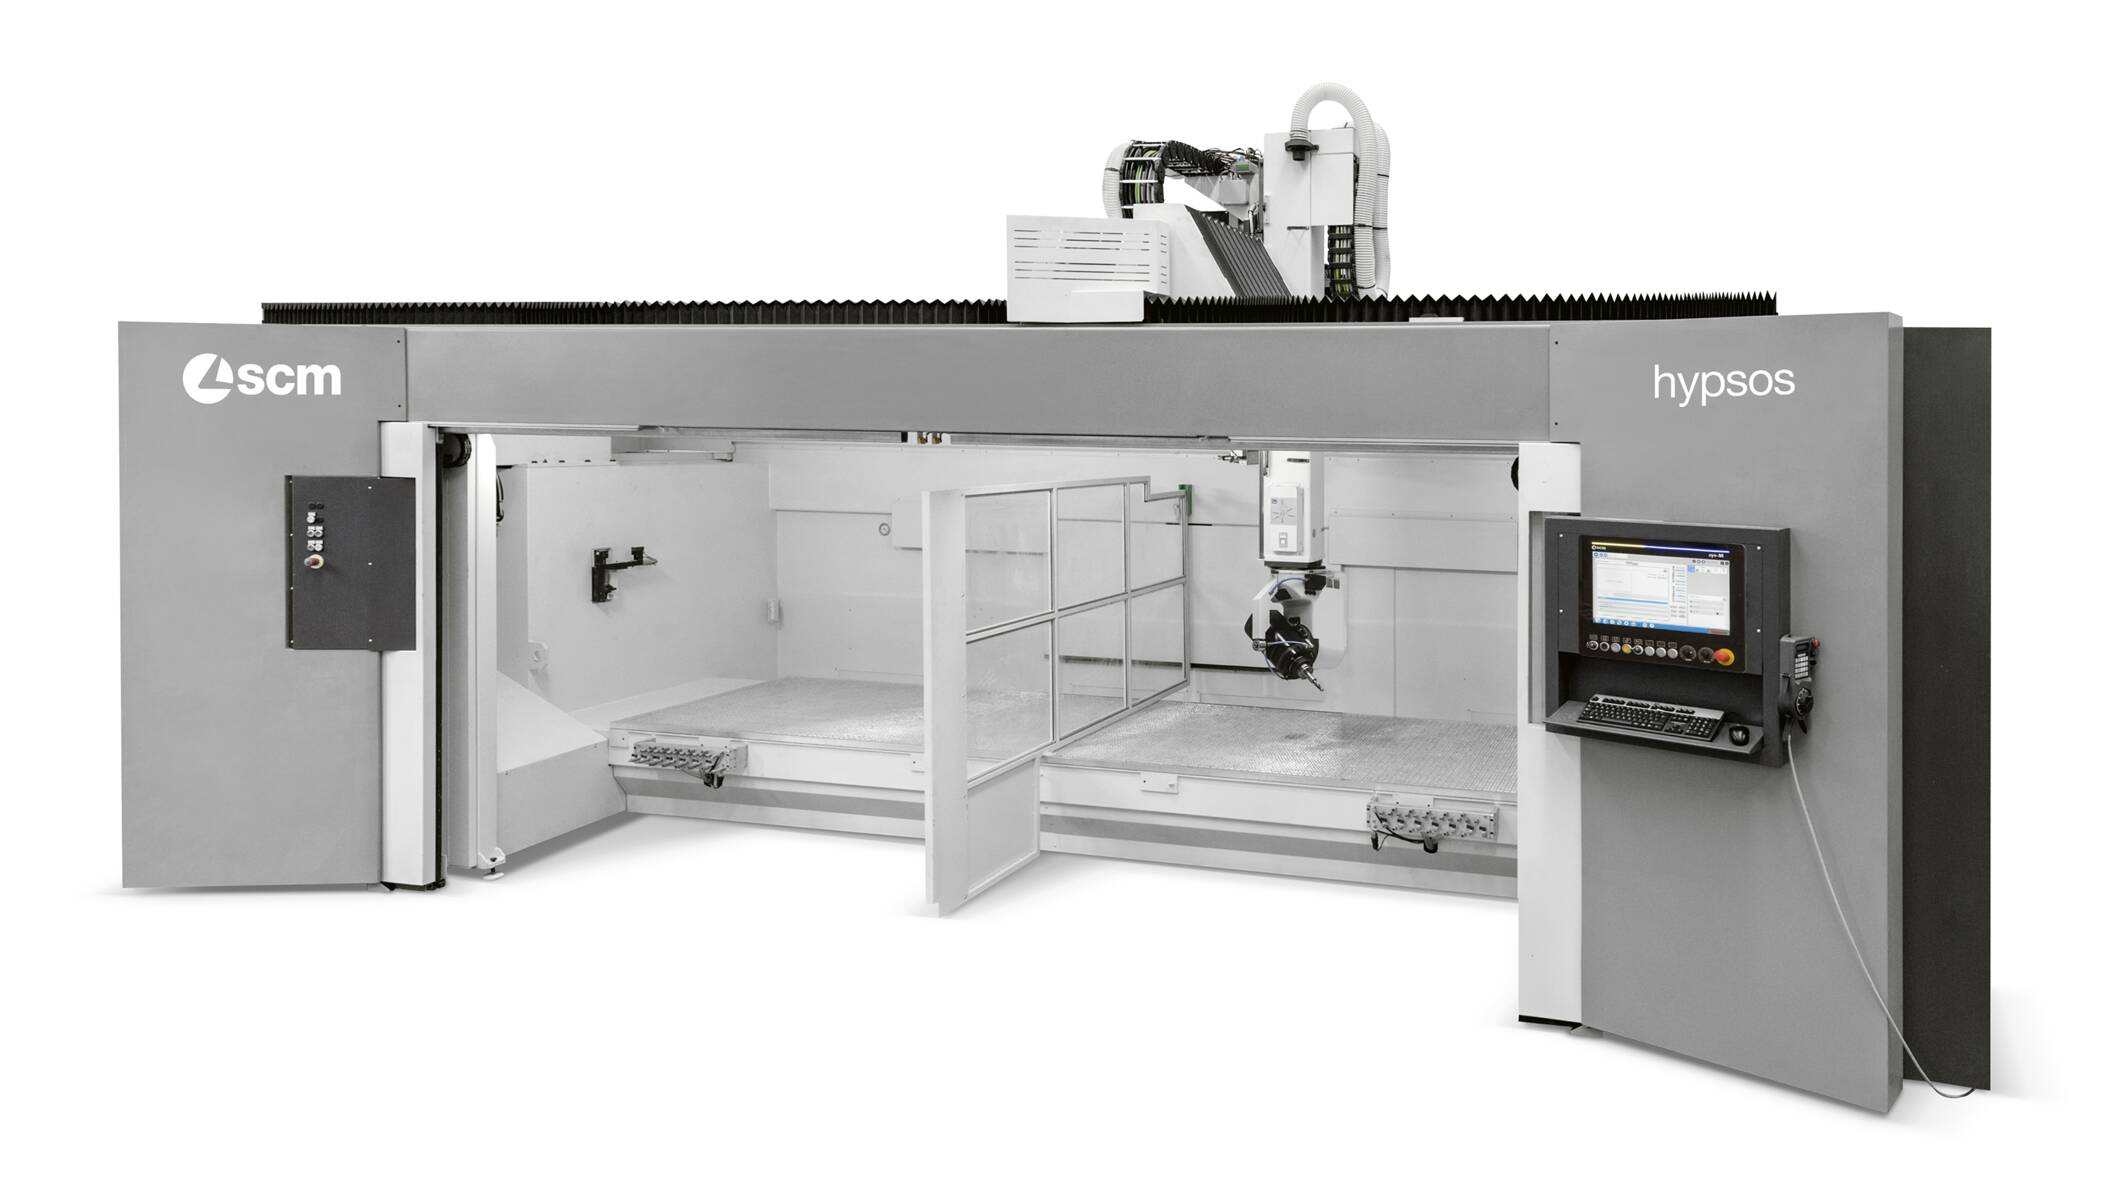 CNC Machining Centres - CNC Machining Centres for solid wood routing and drilling - hypsos